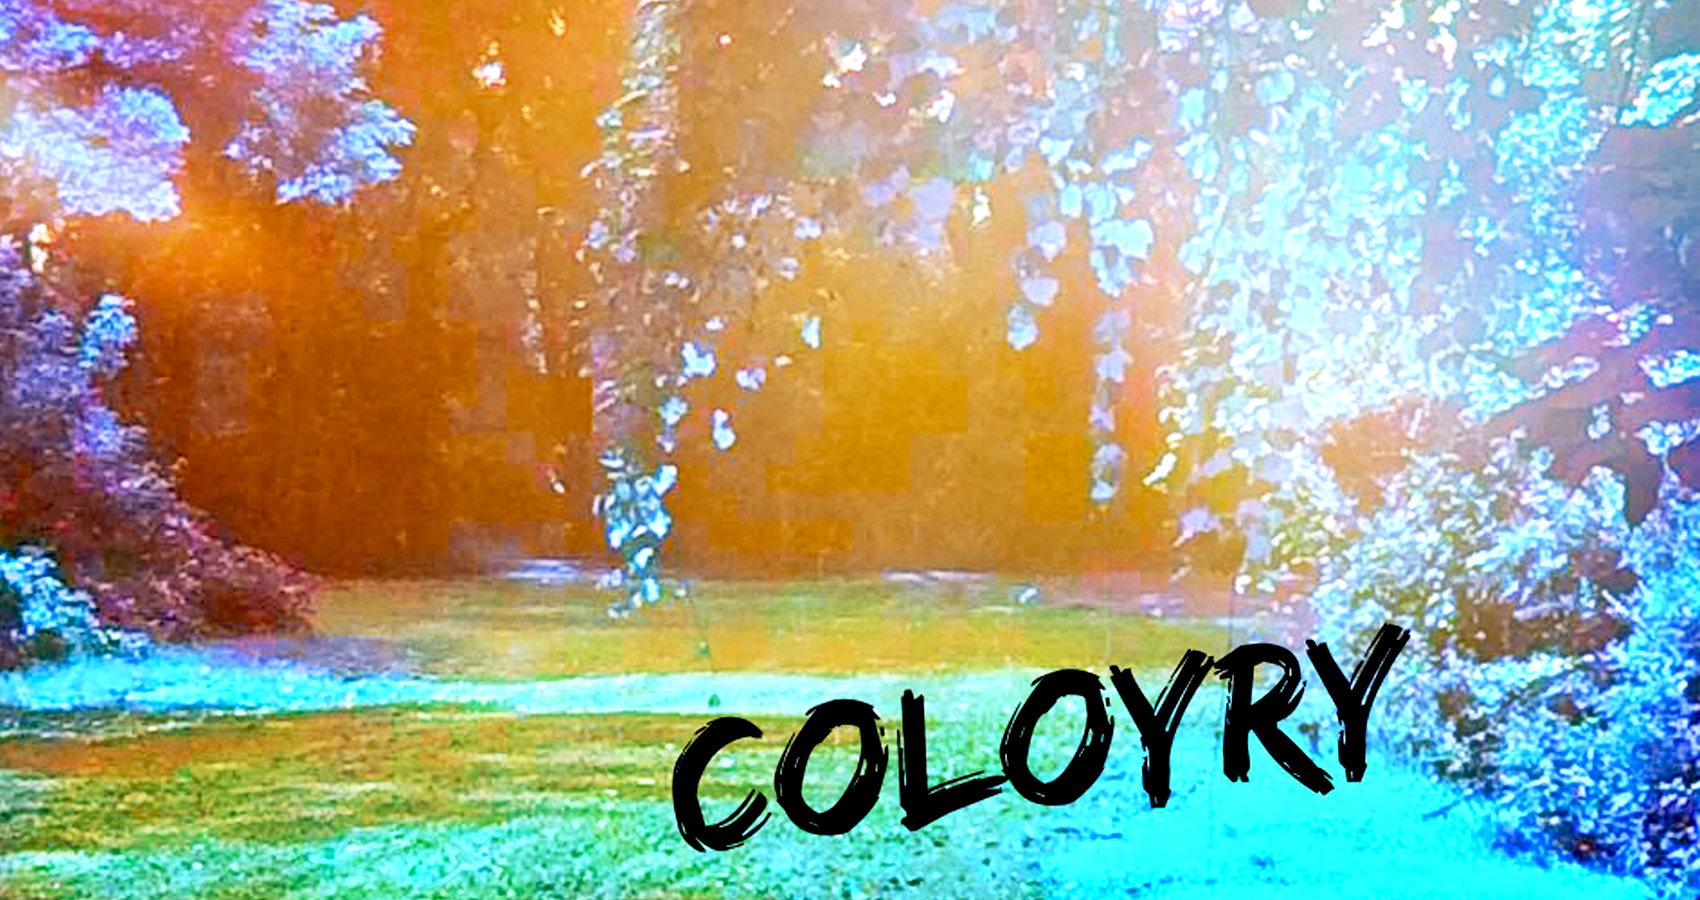 Coloyry by Rando Mithlo at Spillwords.com